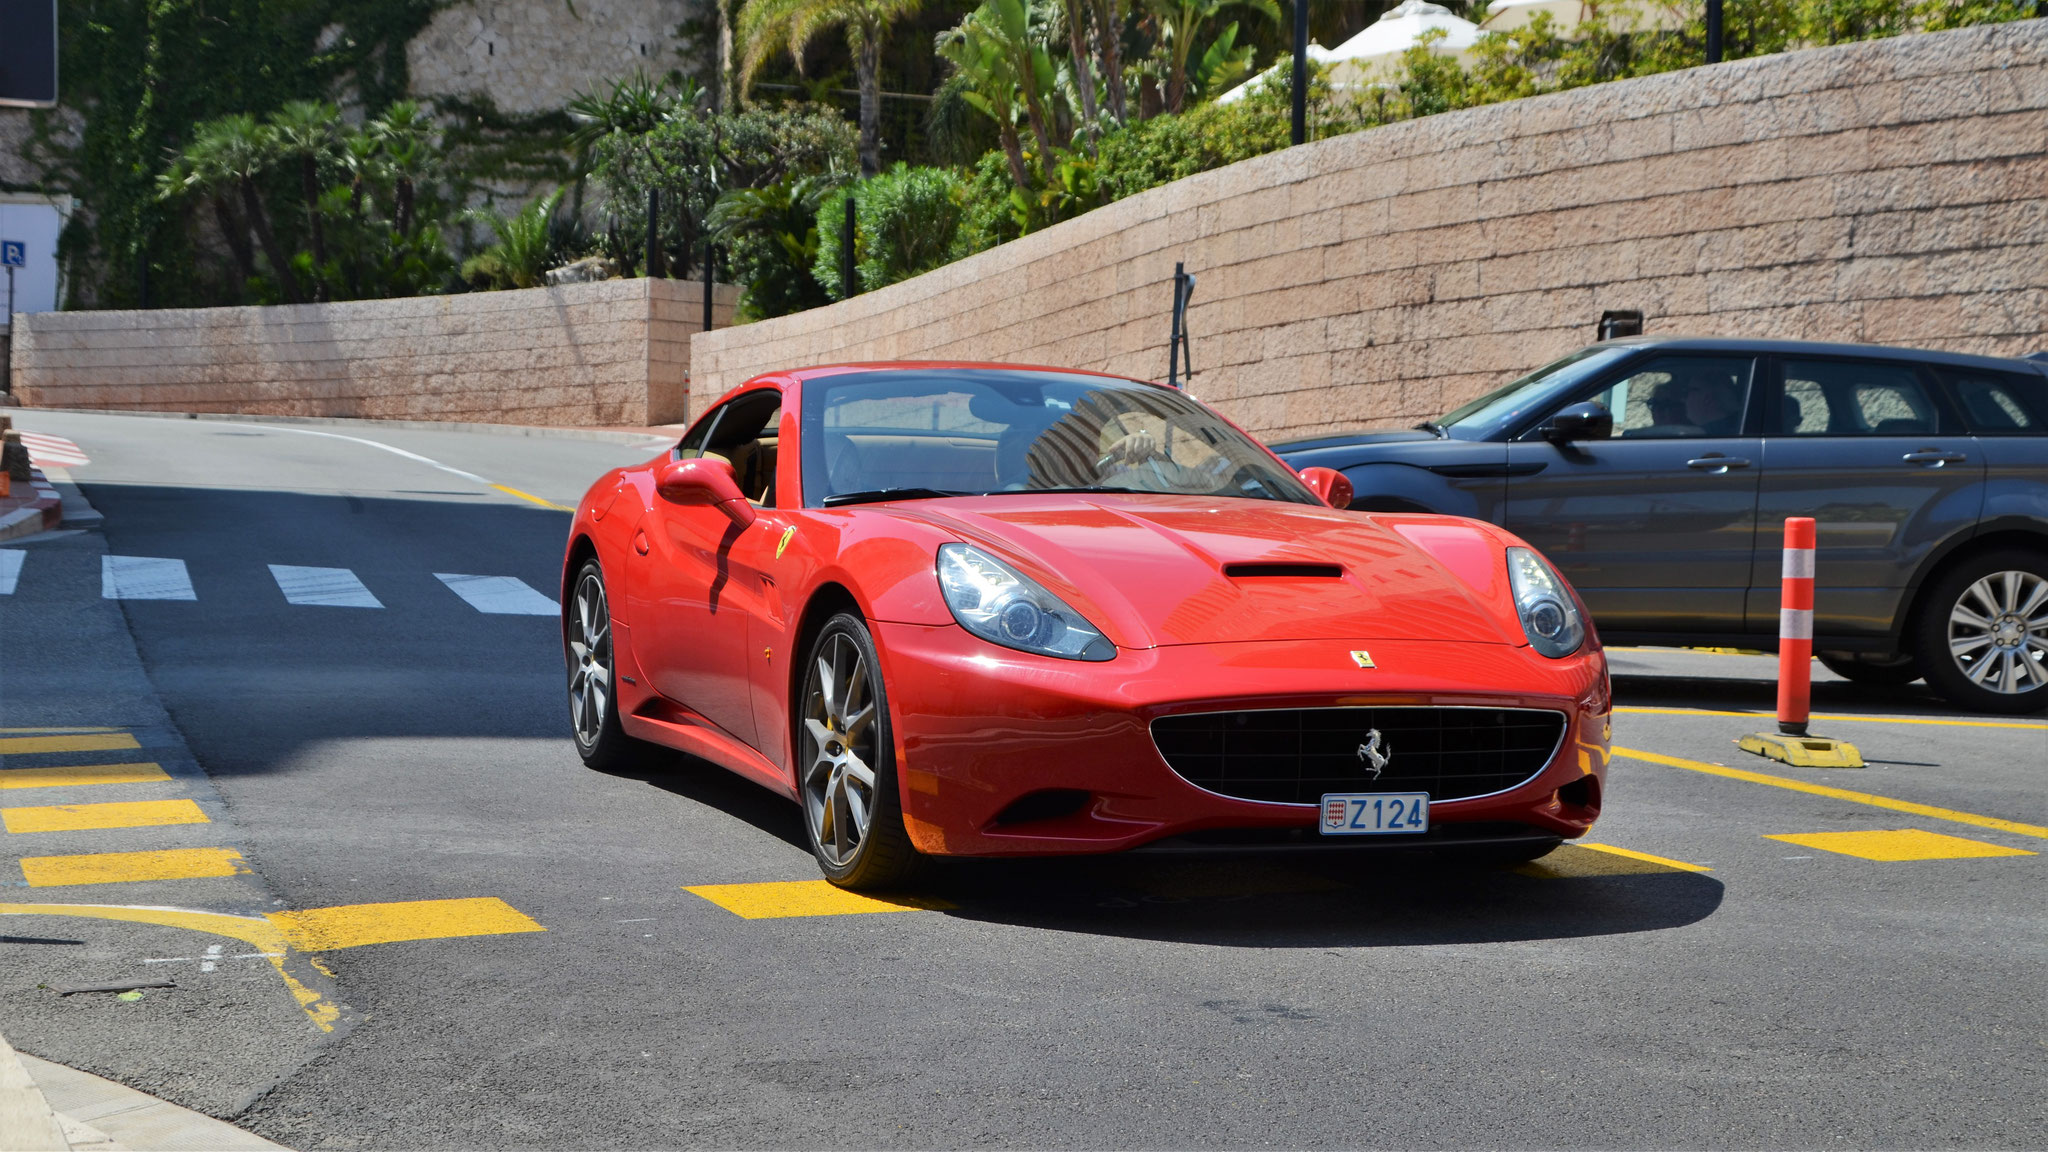 Ferrari California - Z124 (MC)